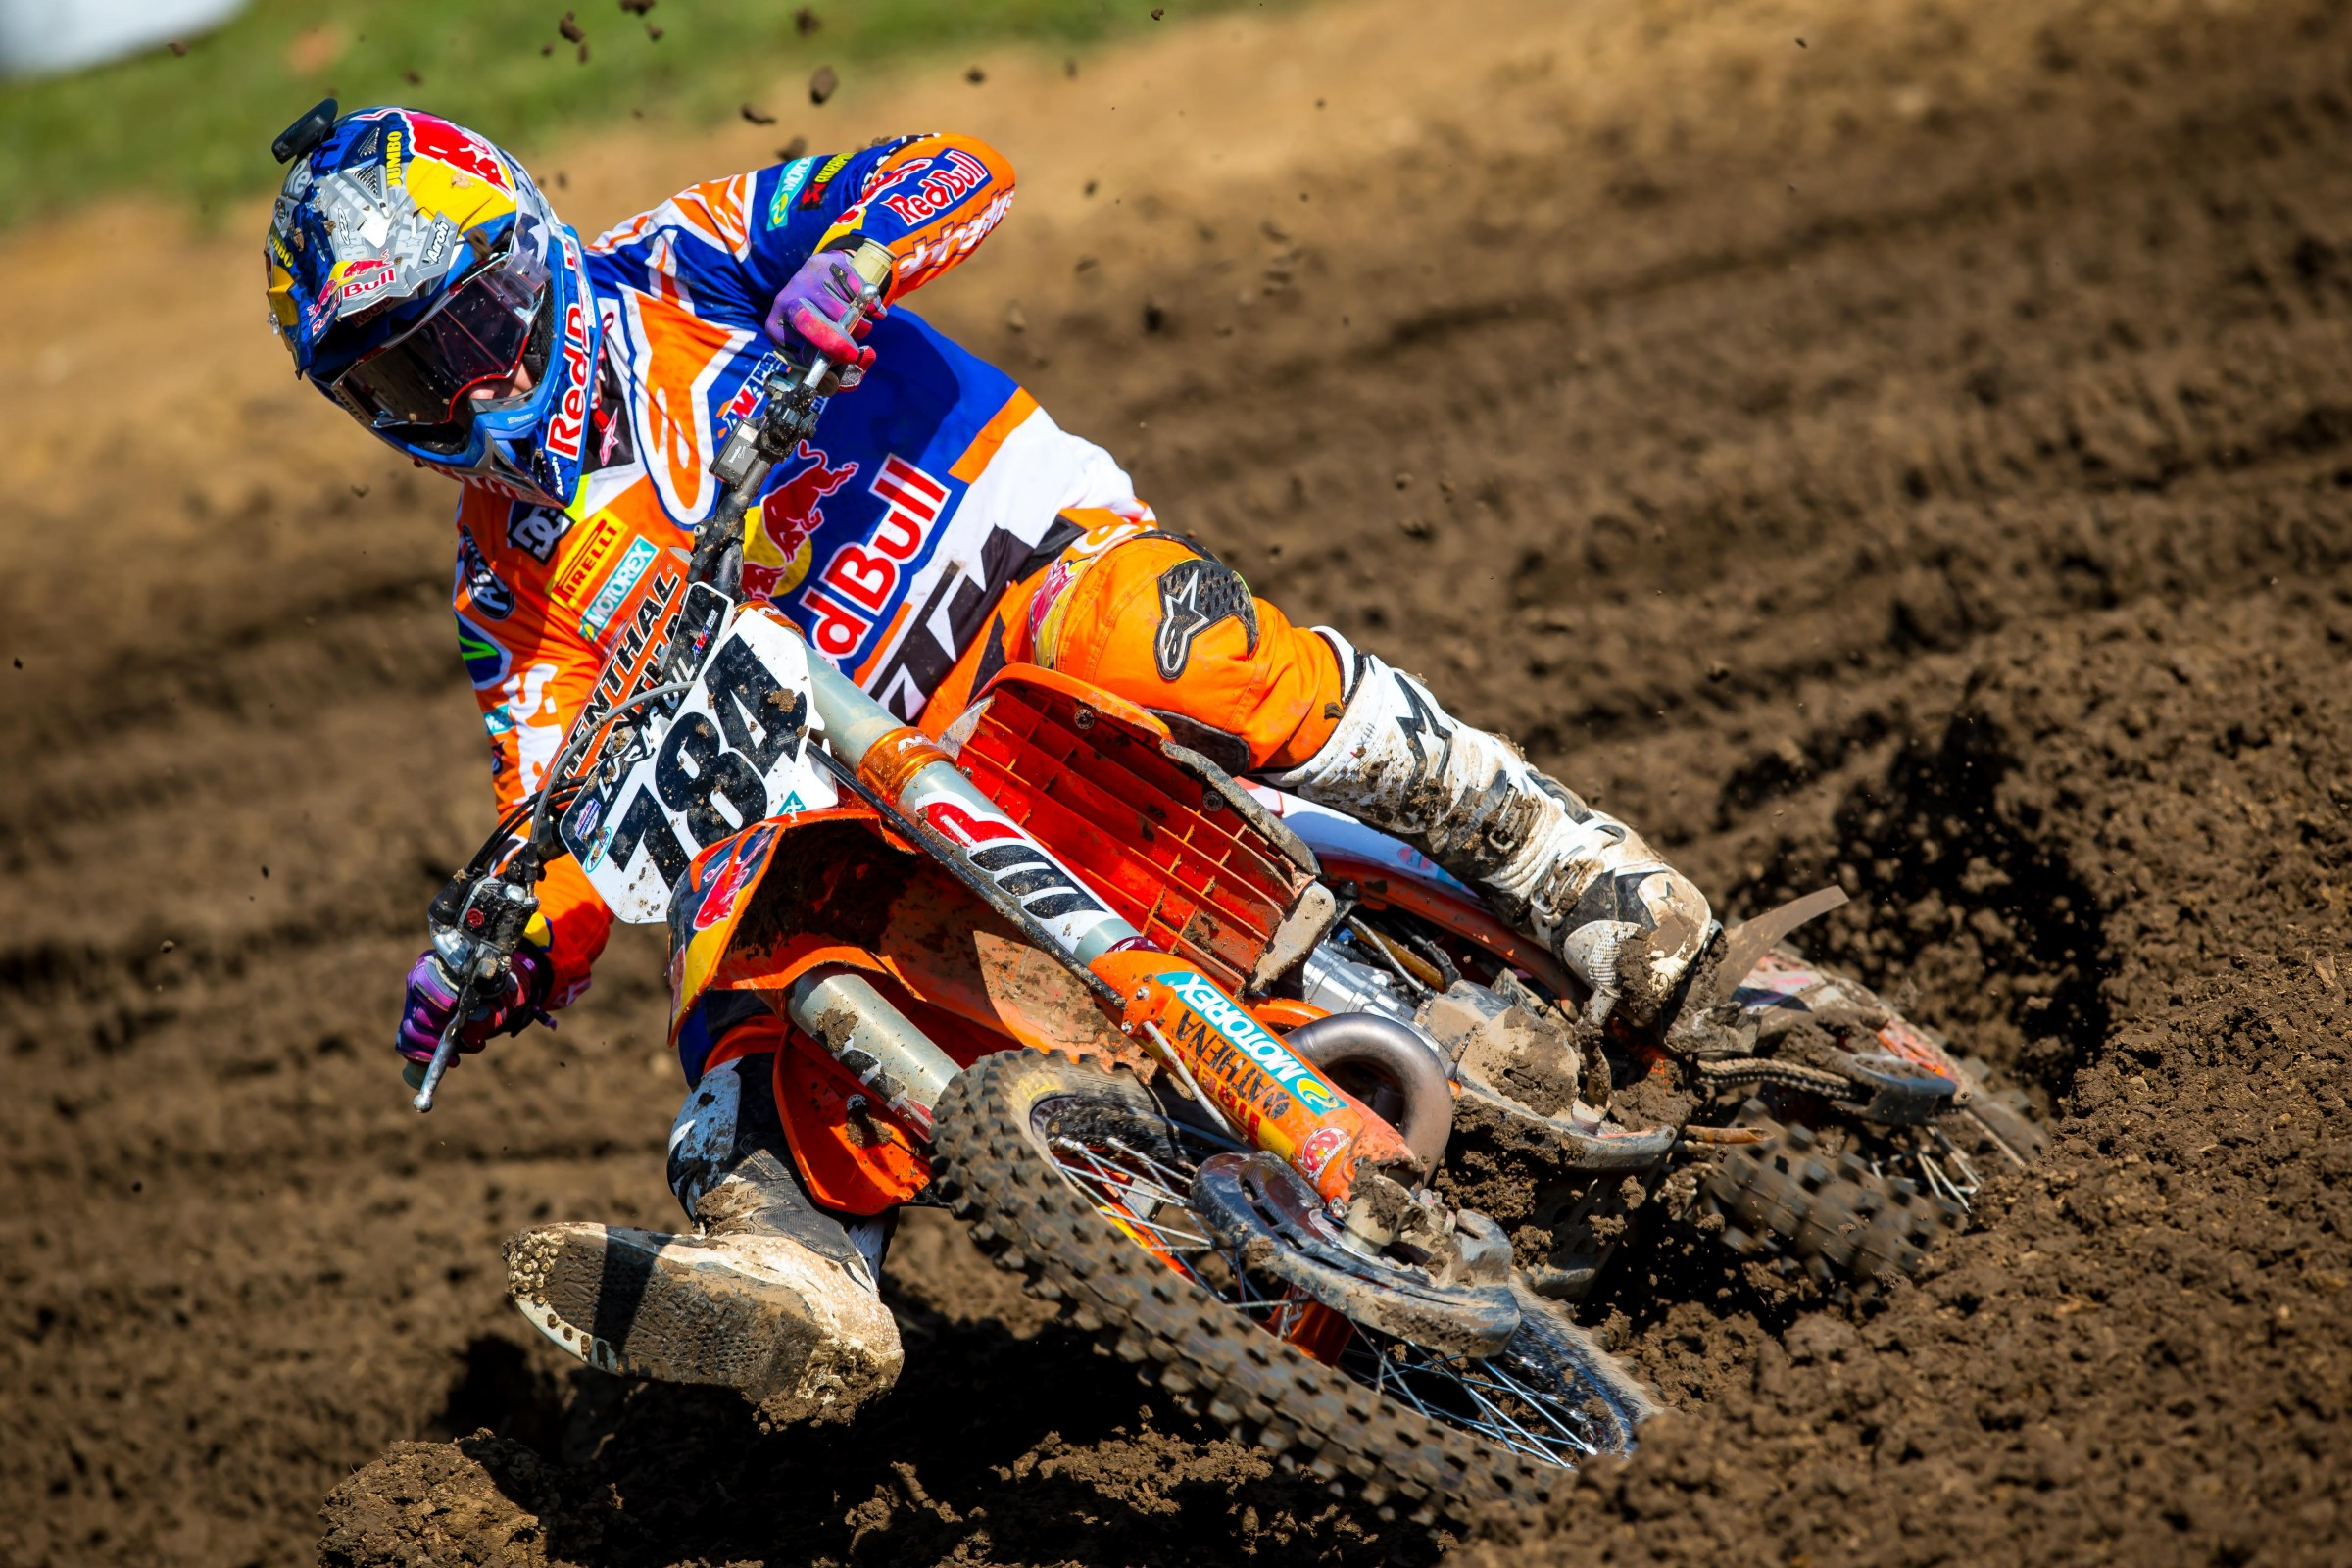 Herlings went 1-1 in his first-ever Lucas Oil Pro Motocross National.